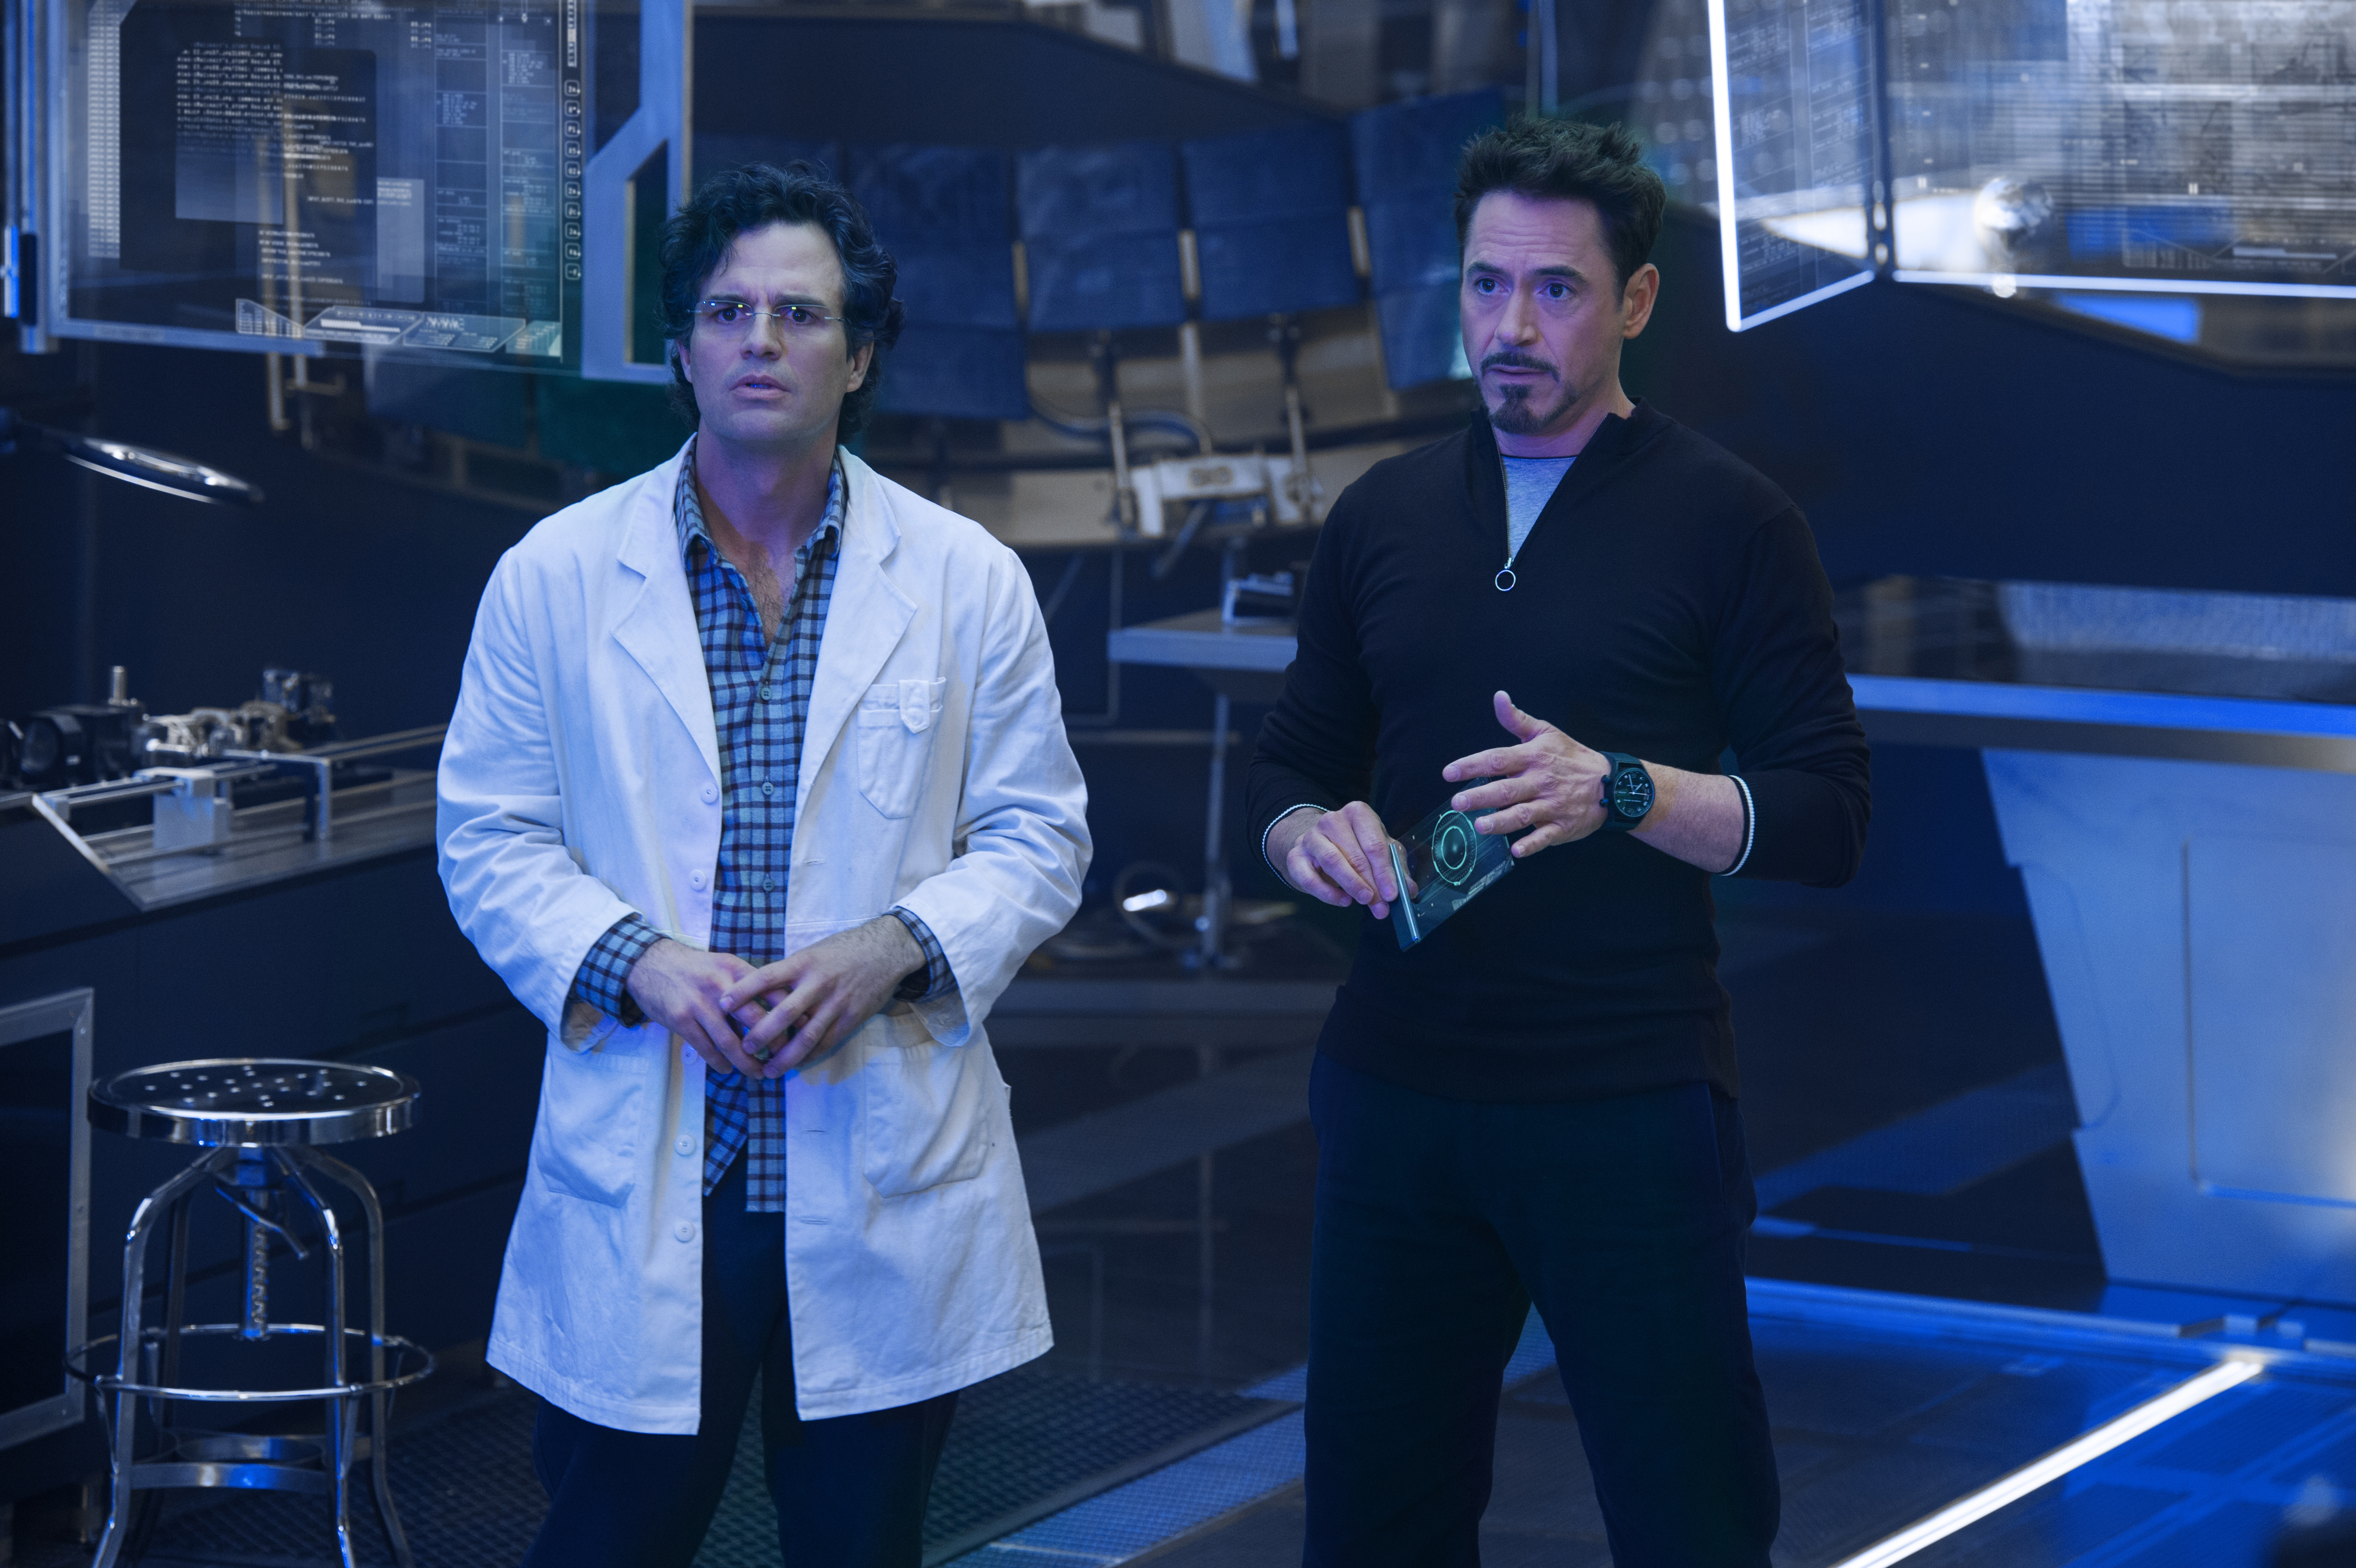 Avengers - Age Of Ultron - Szenen - 05 Bruce Banner (Mark Ruffalo), Tony Stark (Robert Downey Jr.)-3